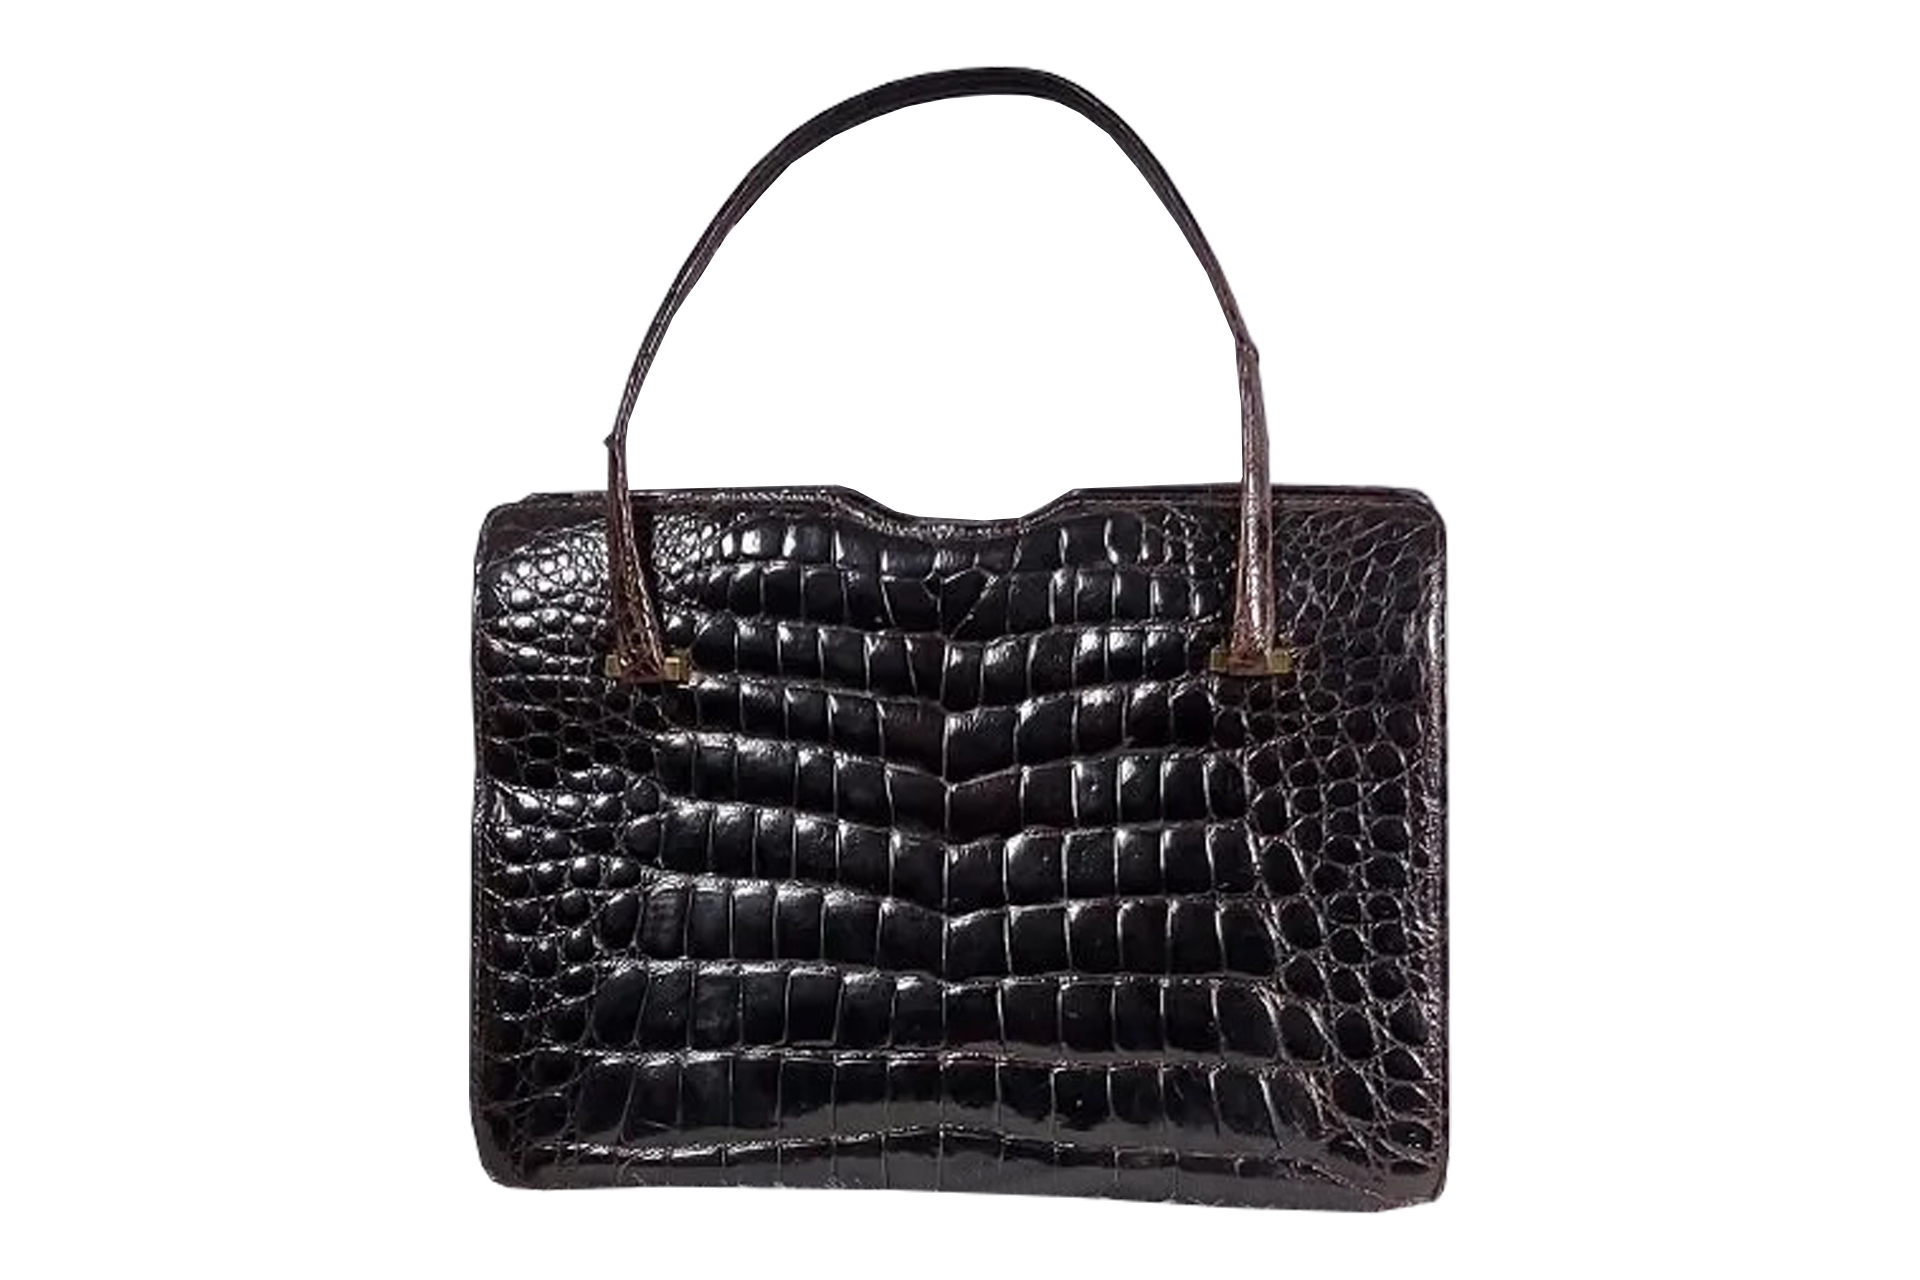 Jasper52 to auction European furs and reptile bags, March 17